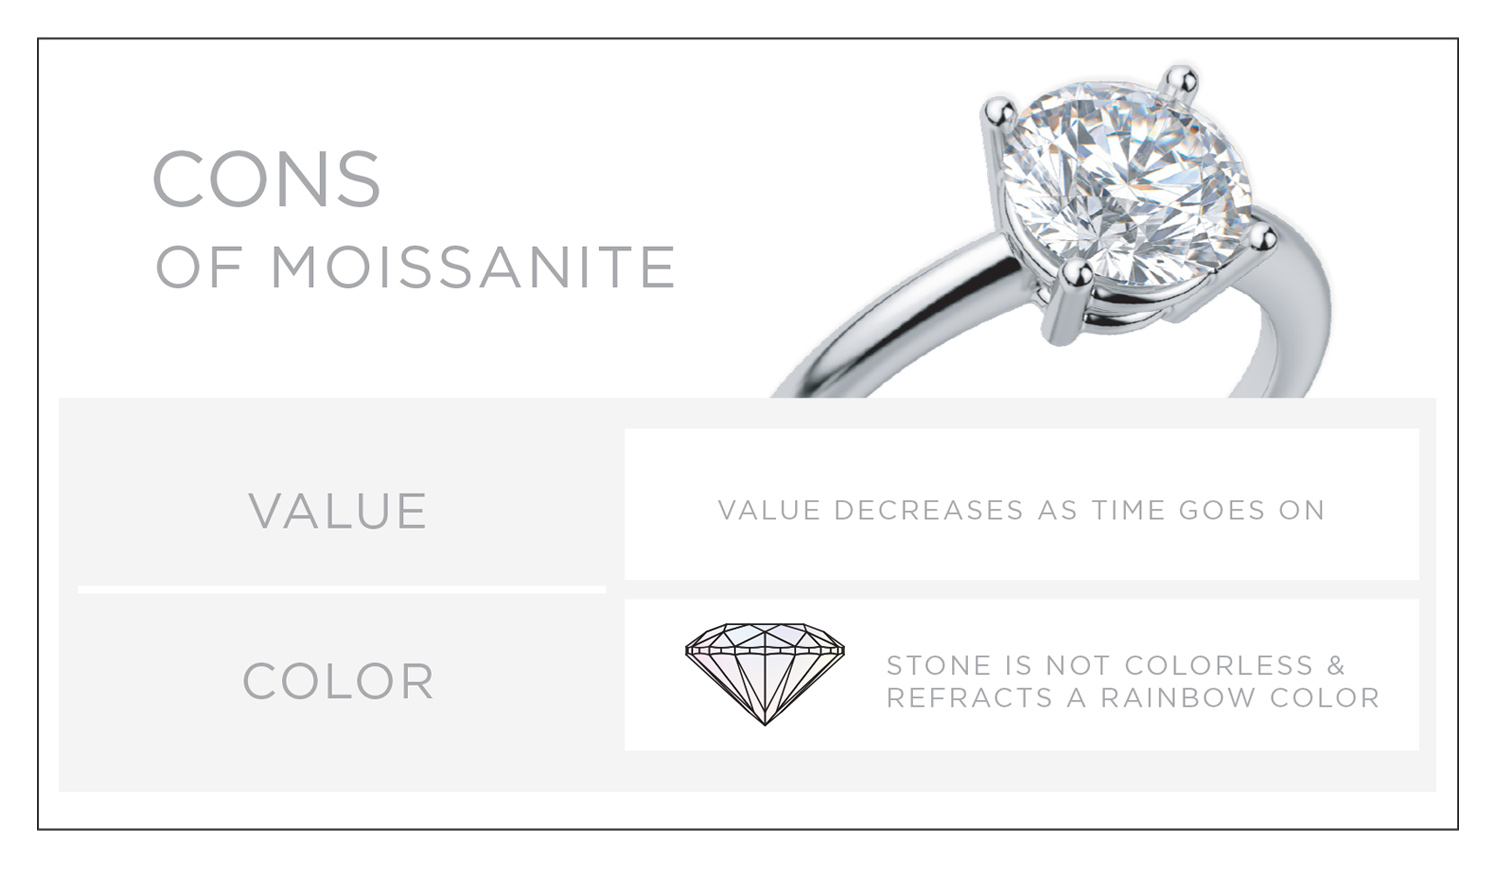 The cons of moissanite